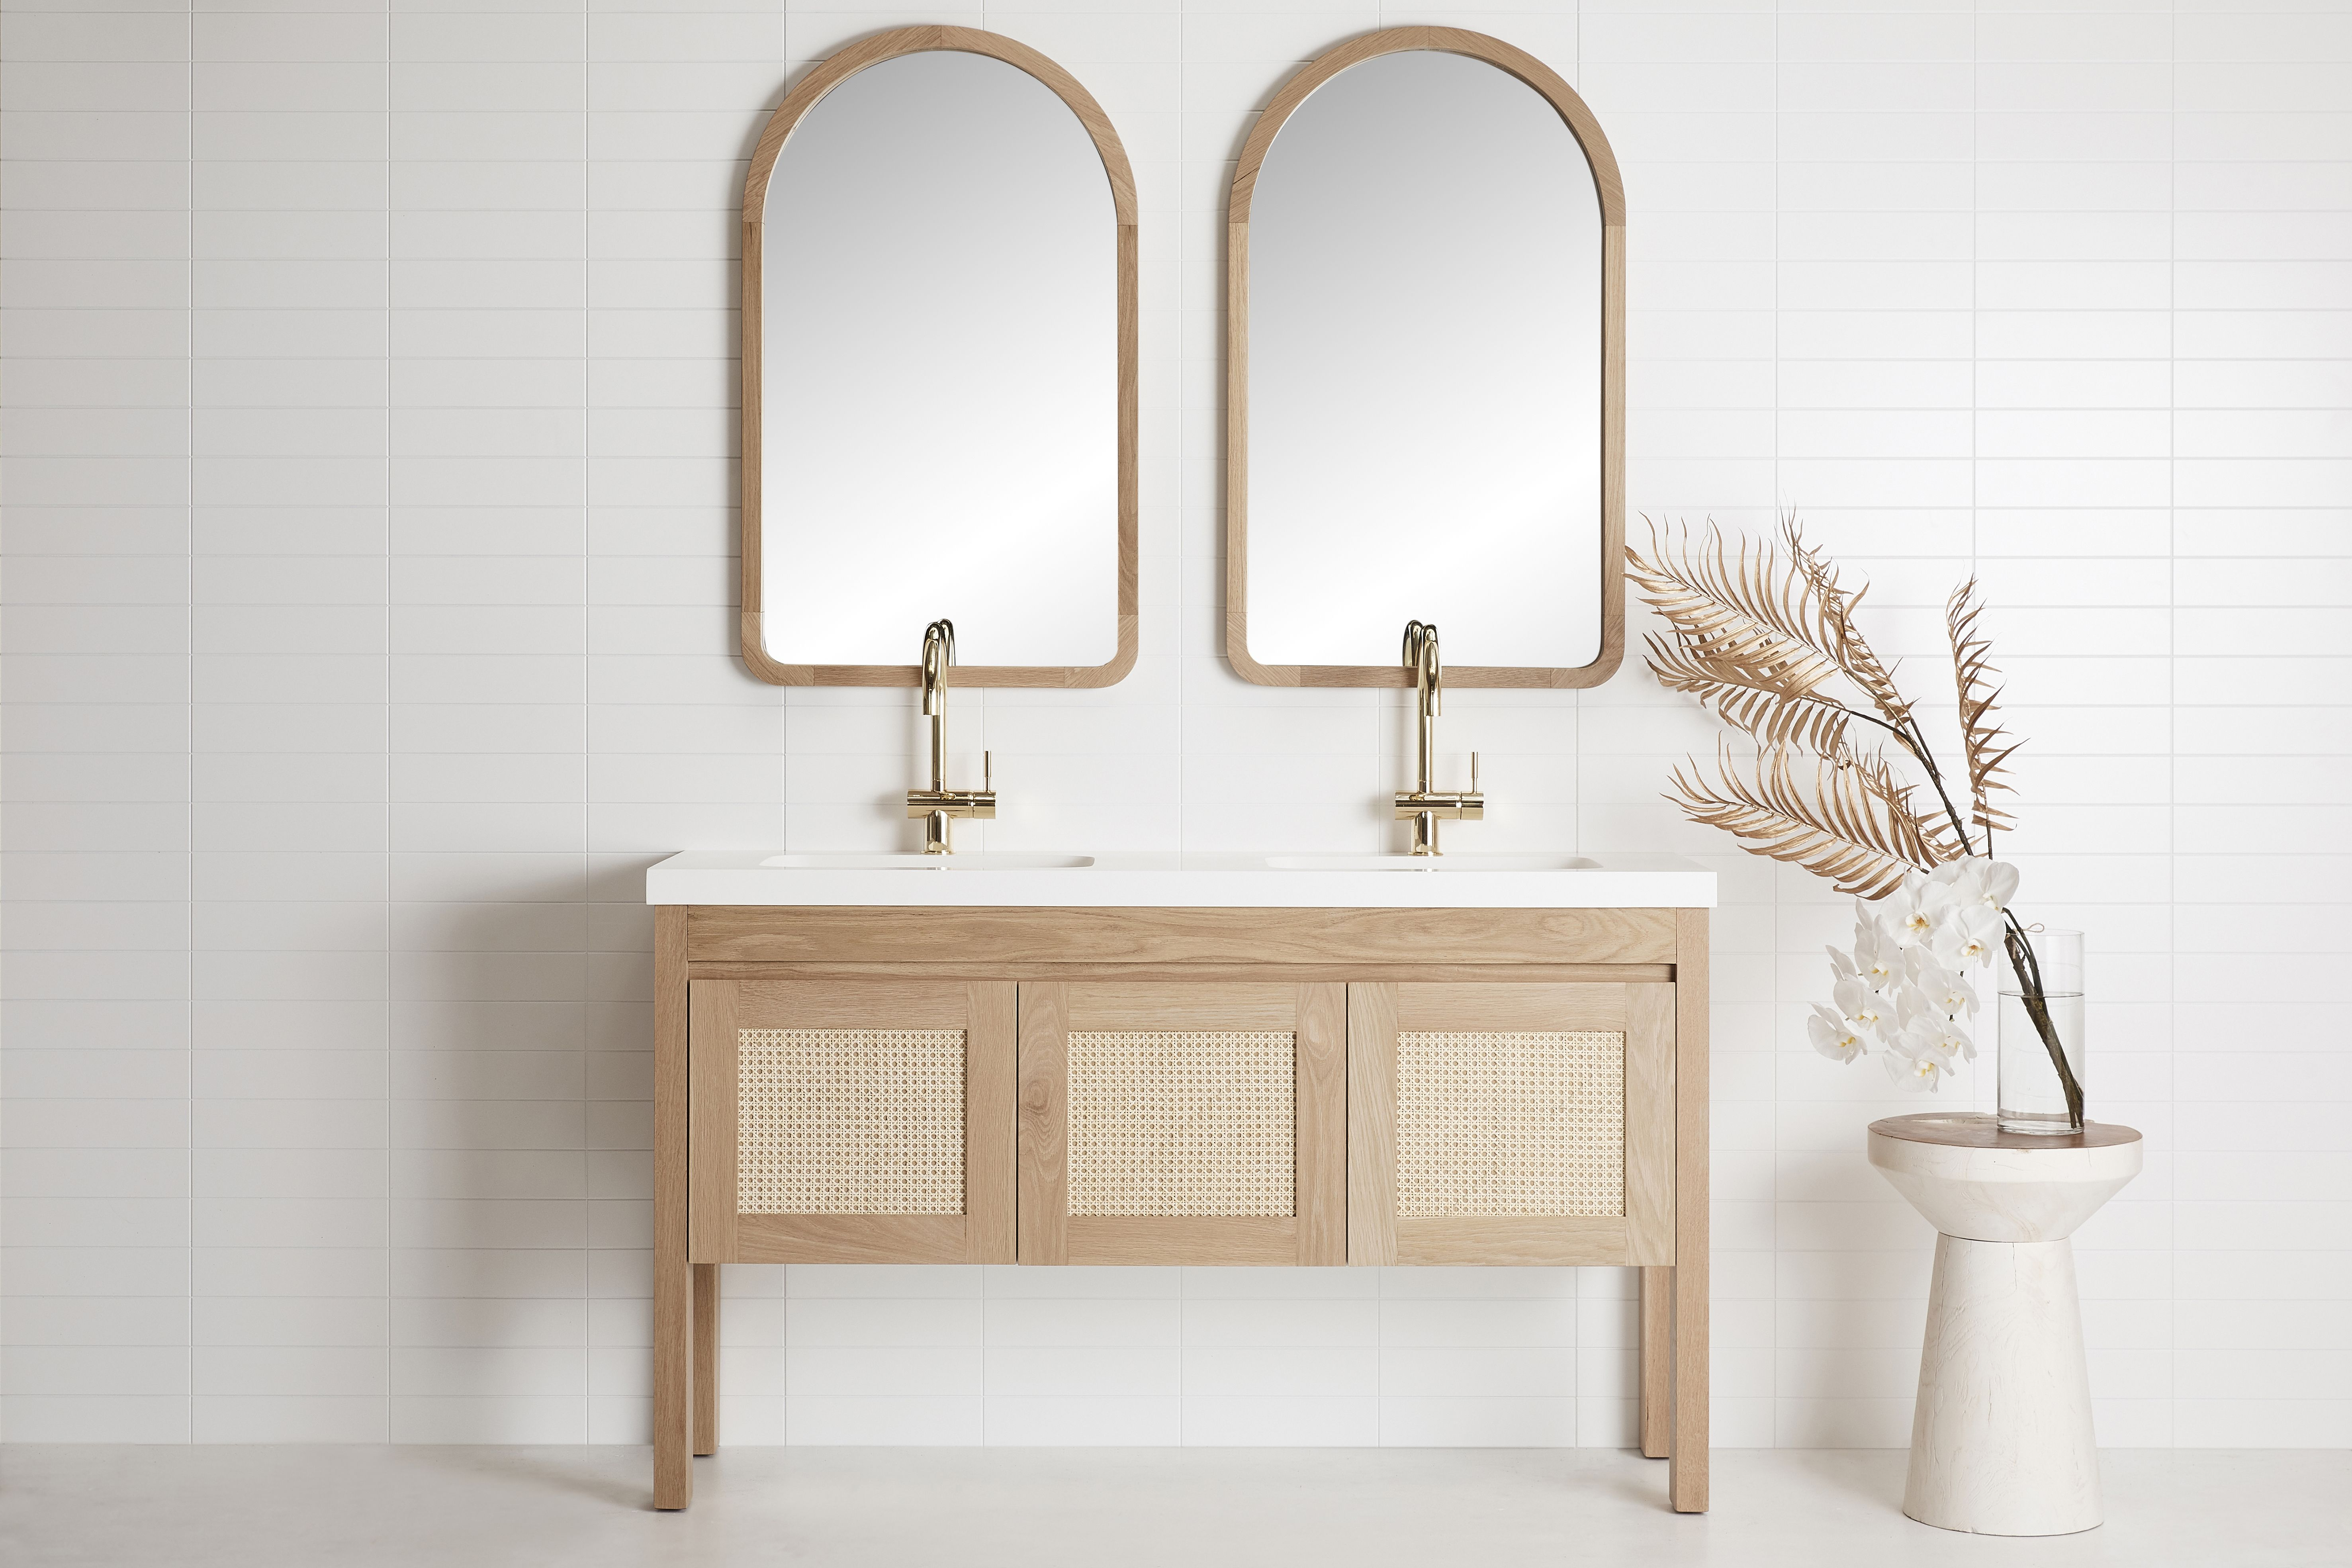 Freo Freestanding Vanity Timber Bathroom Vanities Coastal Inspired Bathrooms Timber Vanity